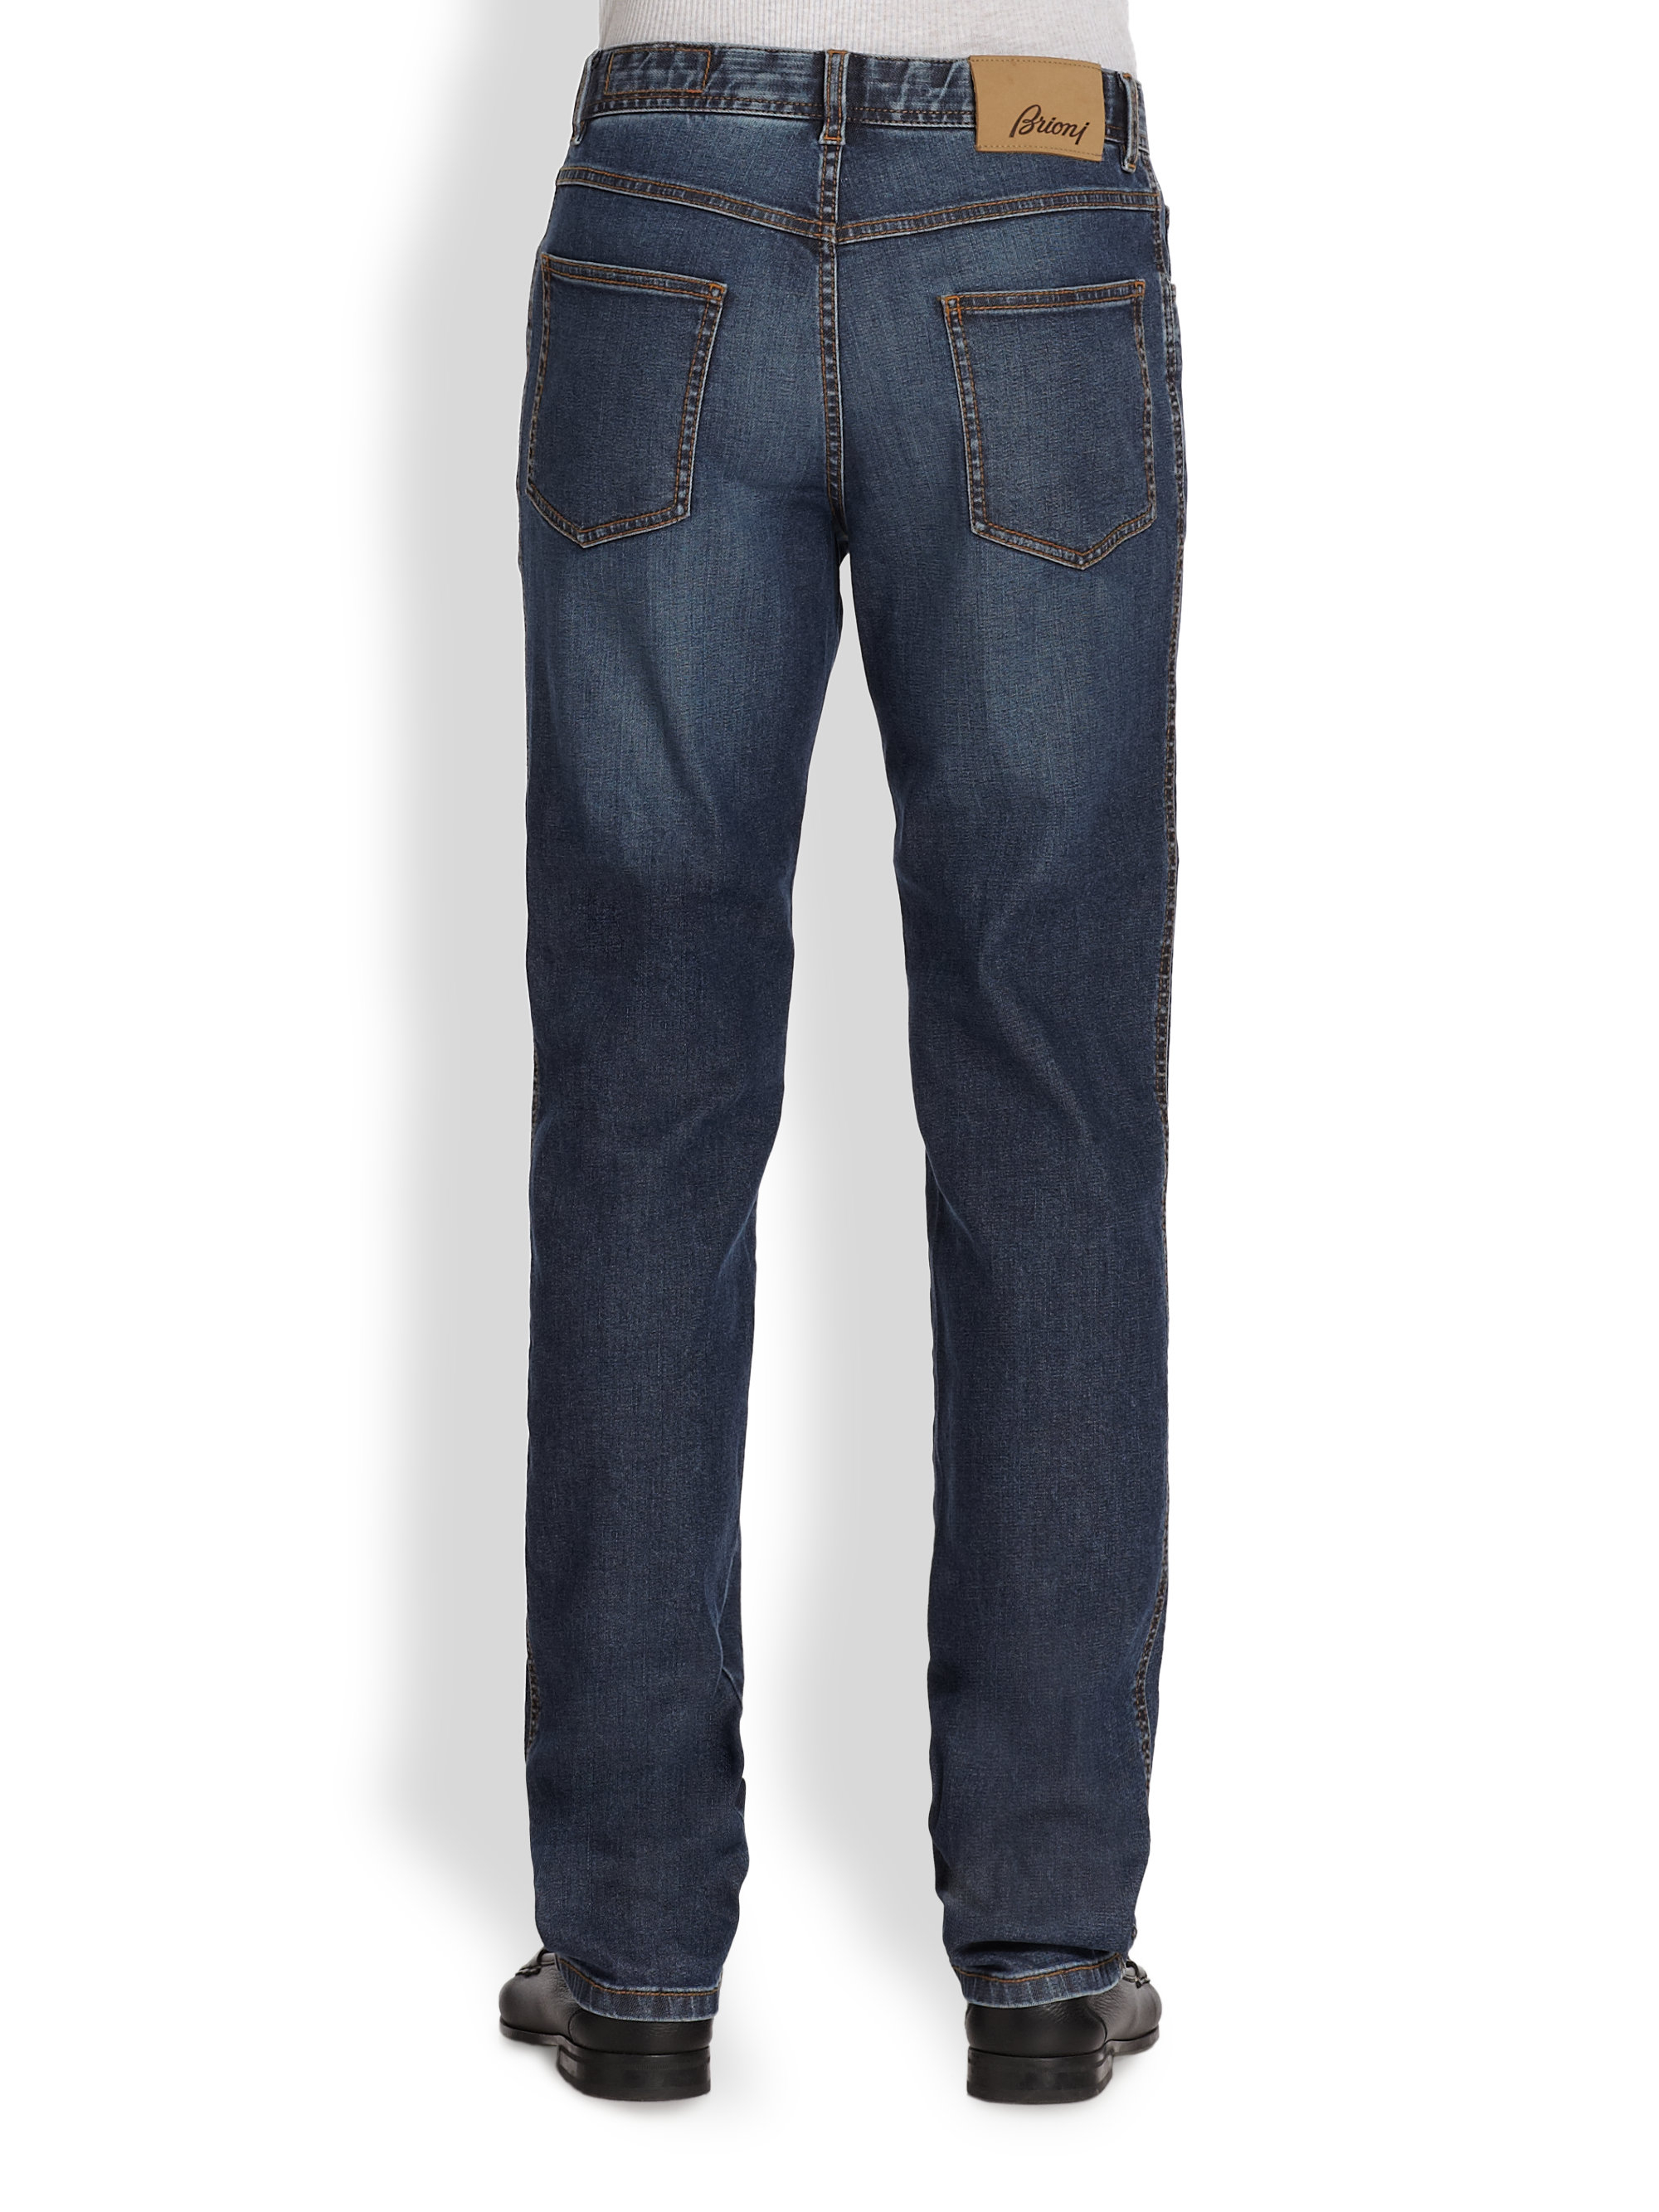 Lyst - Brioni Avanti Denim Jeans in Blue for Men